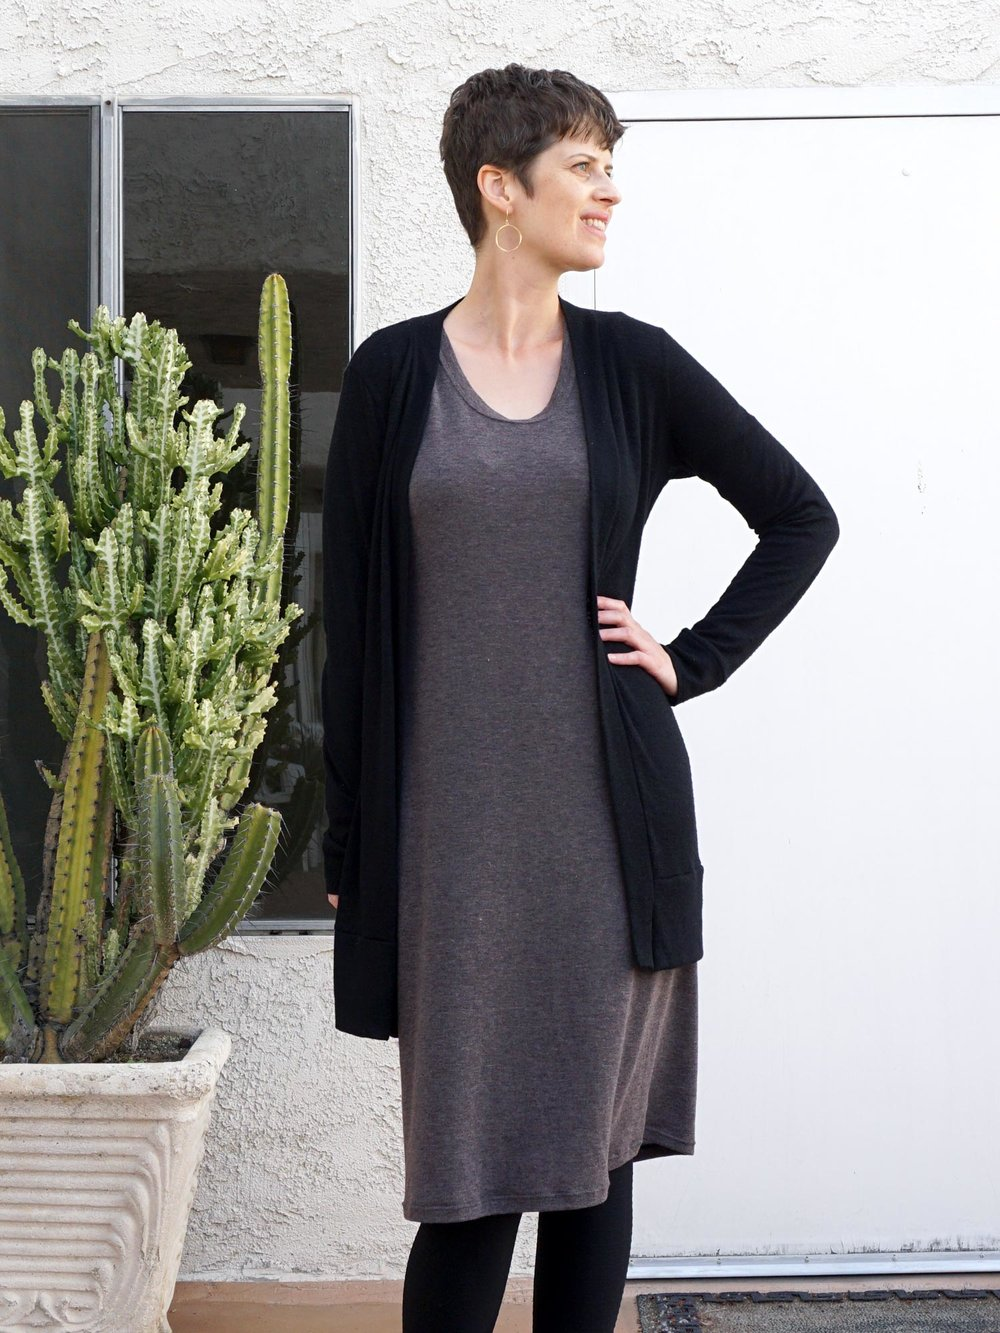 My DIY Travel Outfit – Neenah Dress & Blackwood Cardigan | Sew DIY